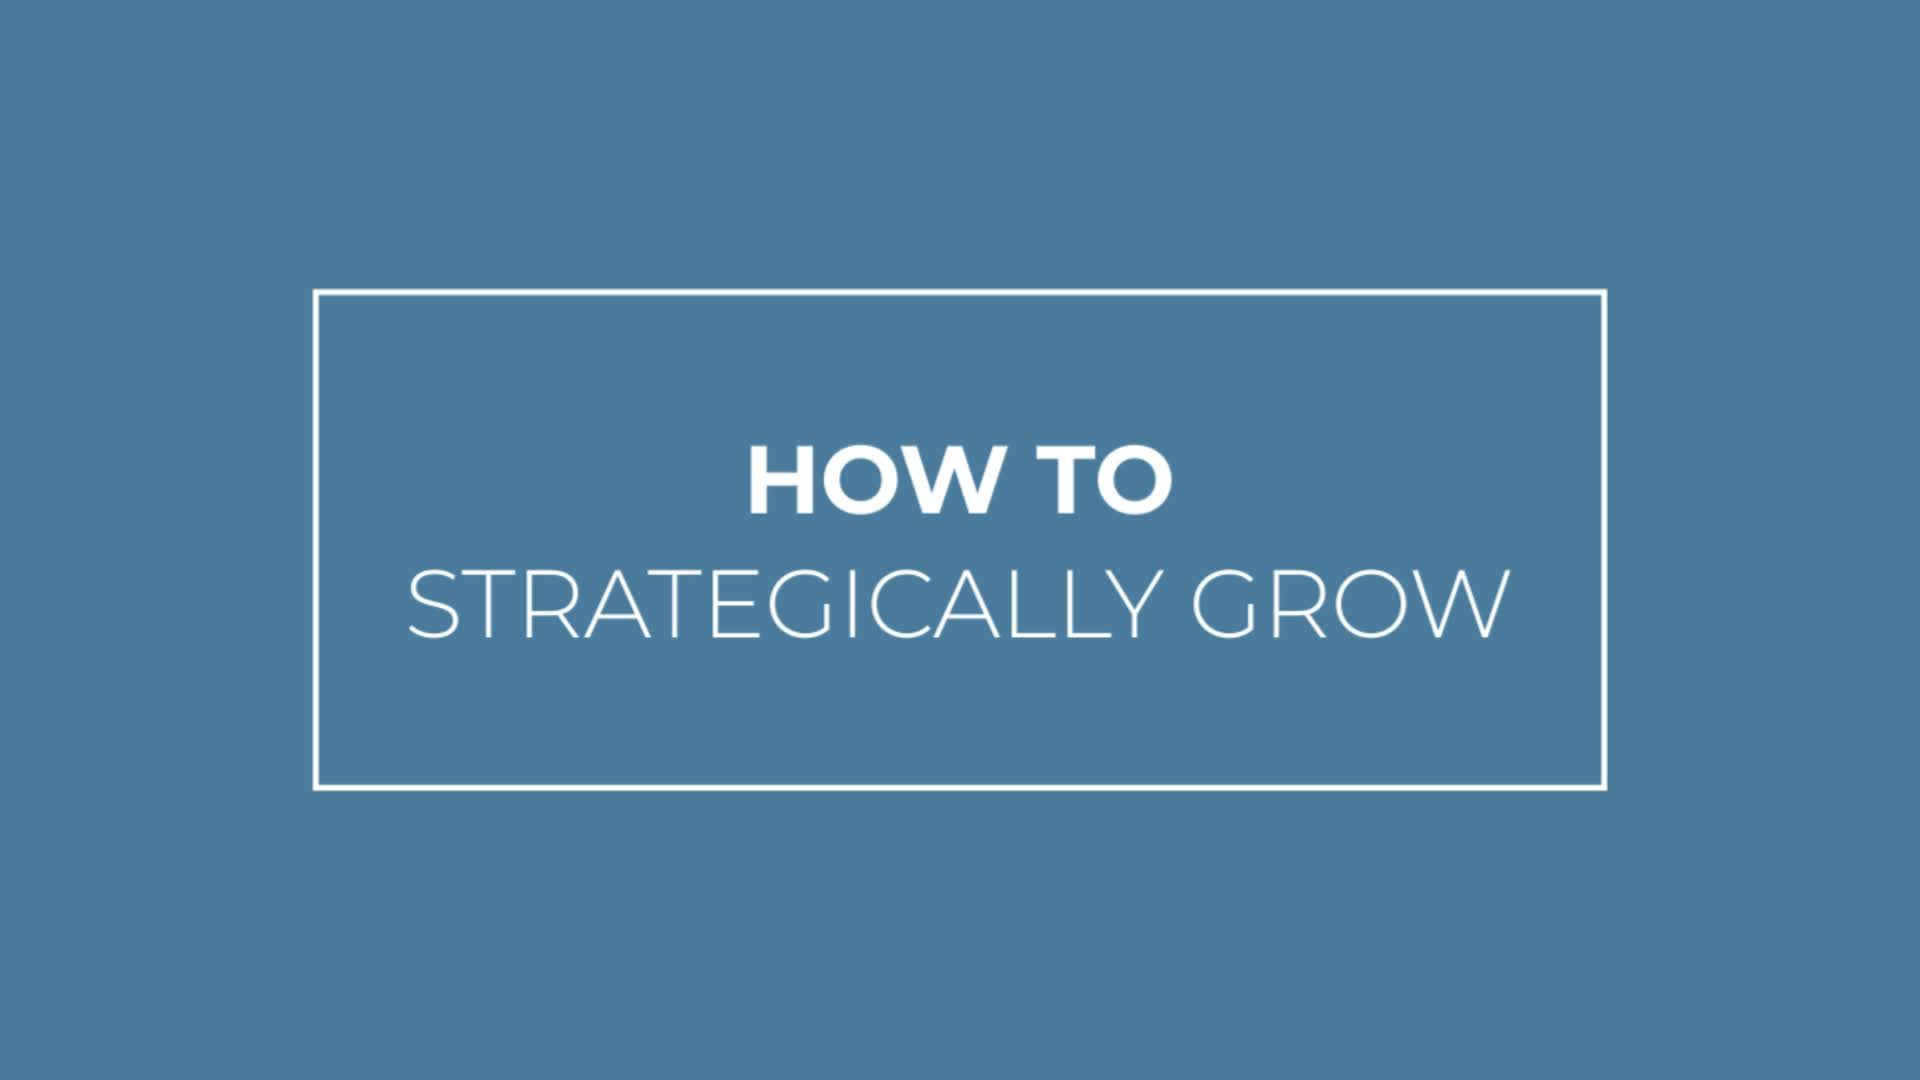 How To Strategically Grow